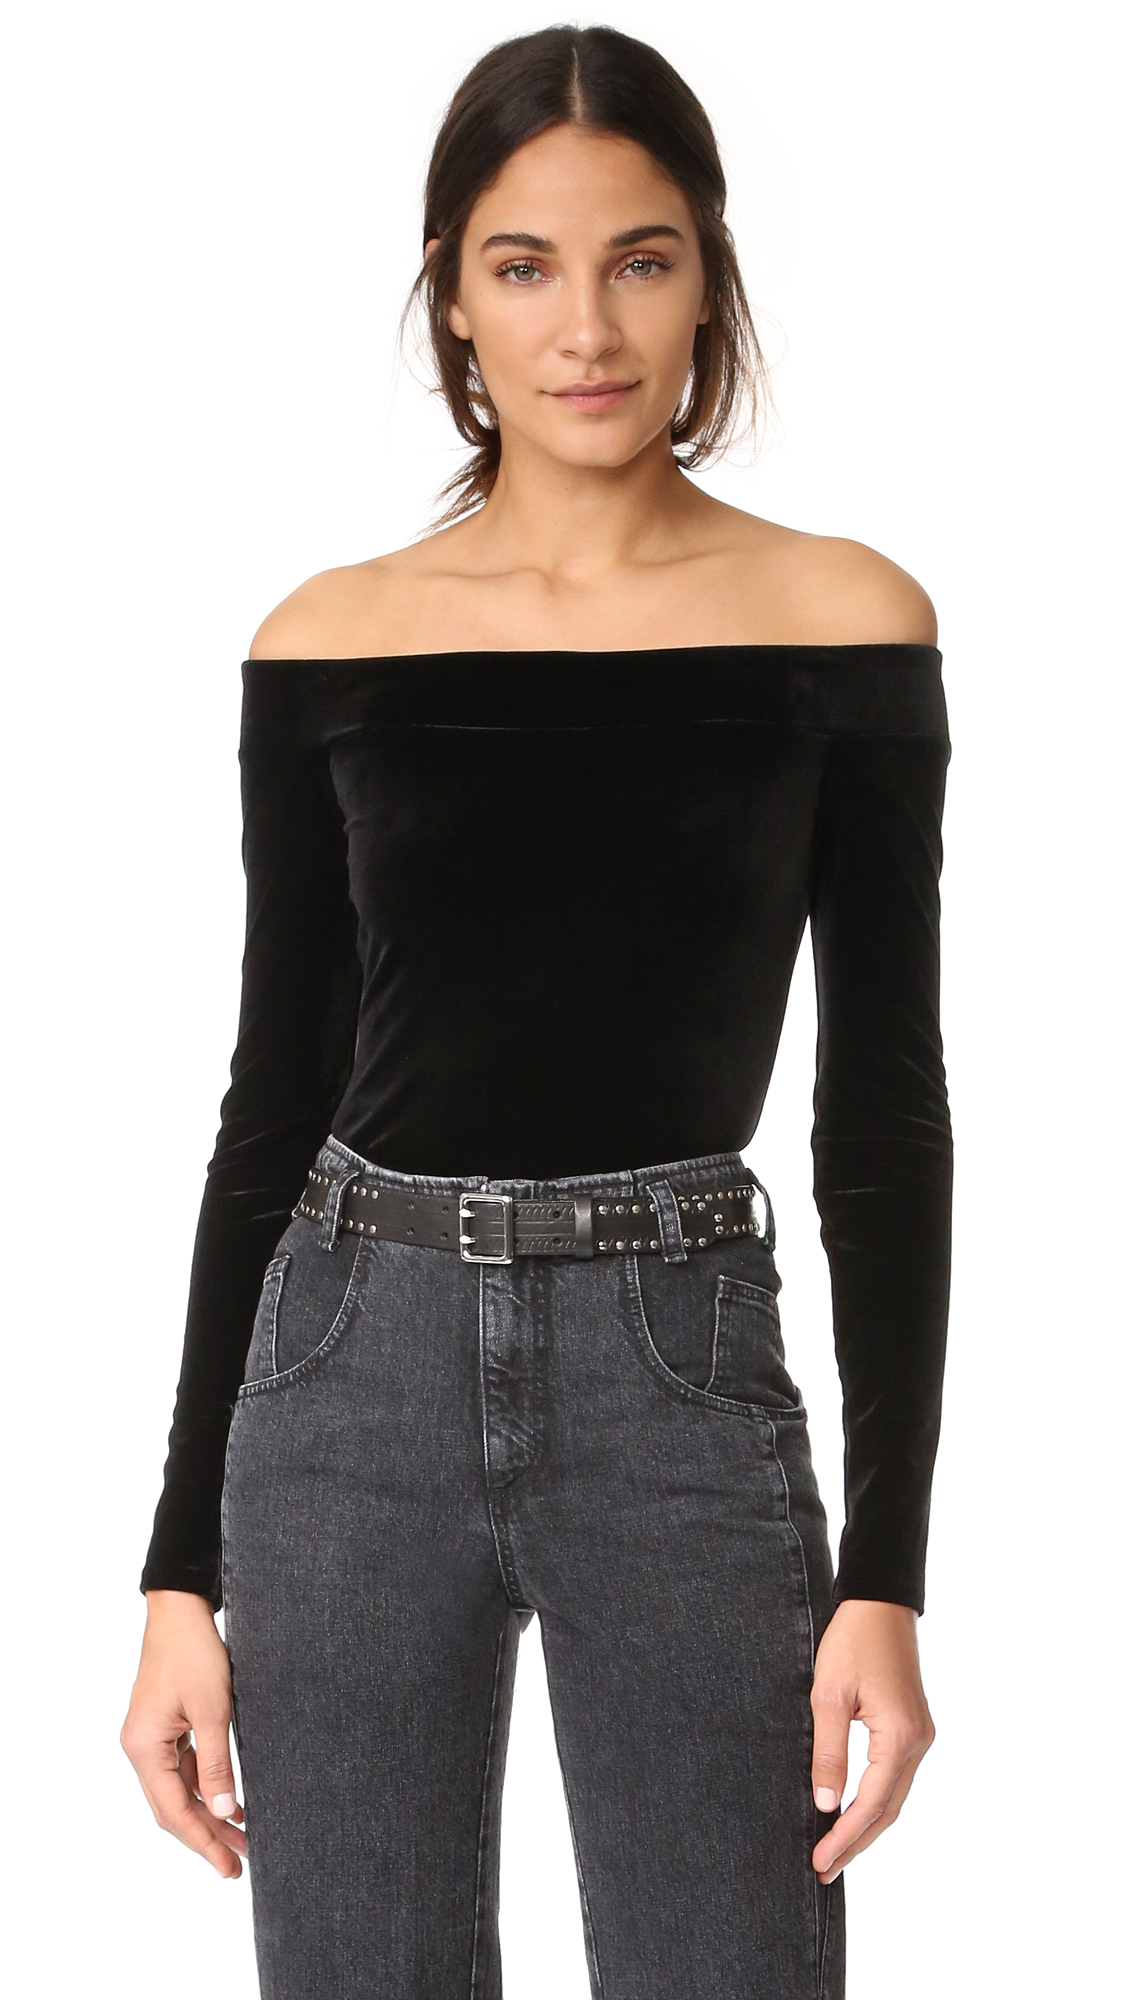 A luxurious velour Bailey44 top in an alluring off shoulder profile. Long sleeves. Lined. Fabric: Velour. Shell: 90% polyester/10% spandex. Lining: 95% rayon/5% spandex. Dry clean. Made in the USA. Measurements Length: 16.5in / 42cm, from center back Measurements